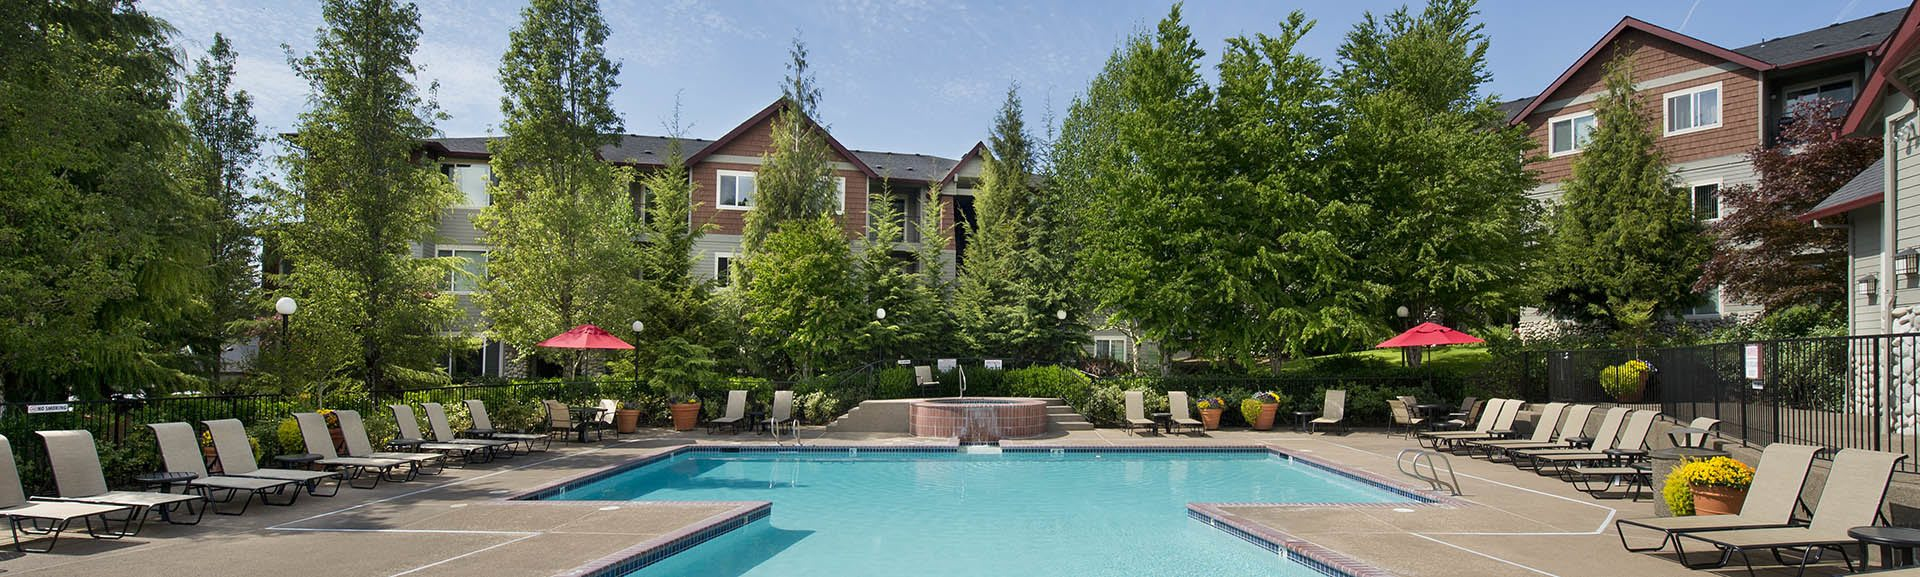 See what we have to offer by visiting Altamont Summit's amenities page.